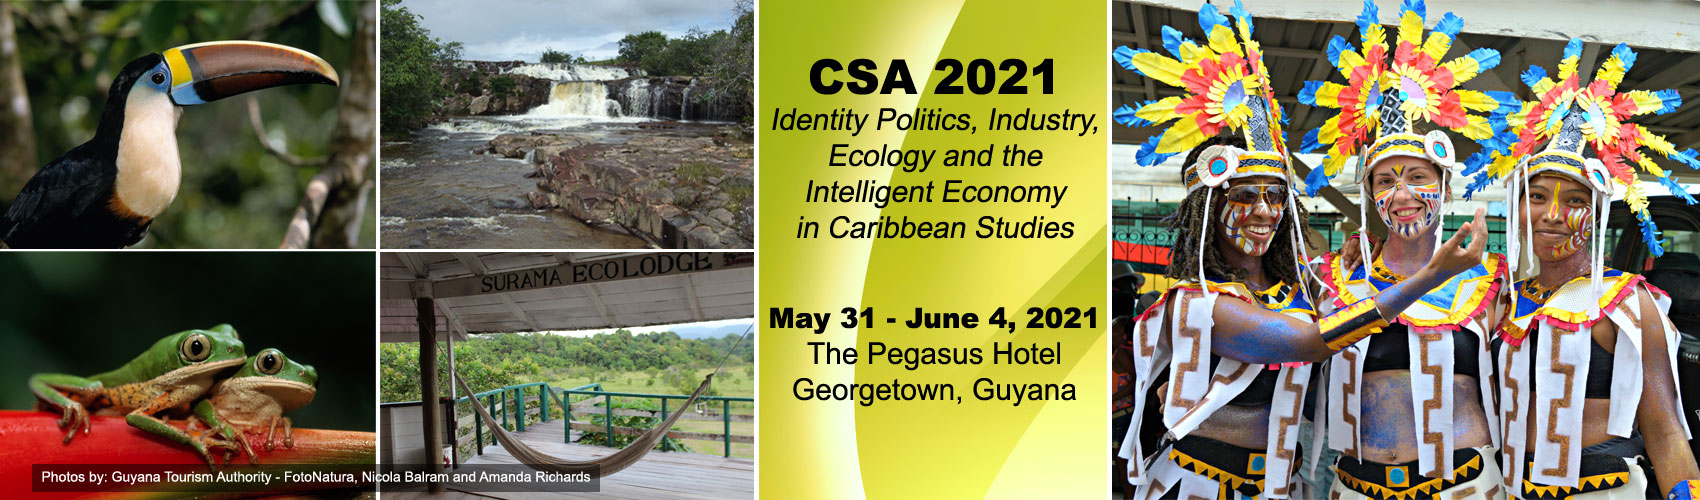 2021 CSA conference